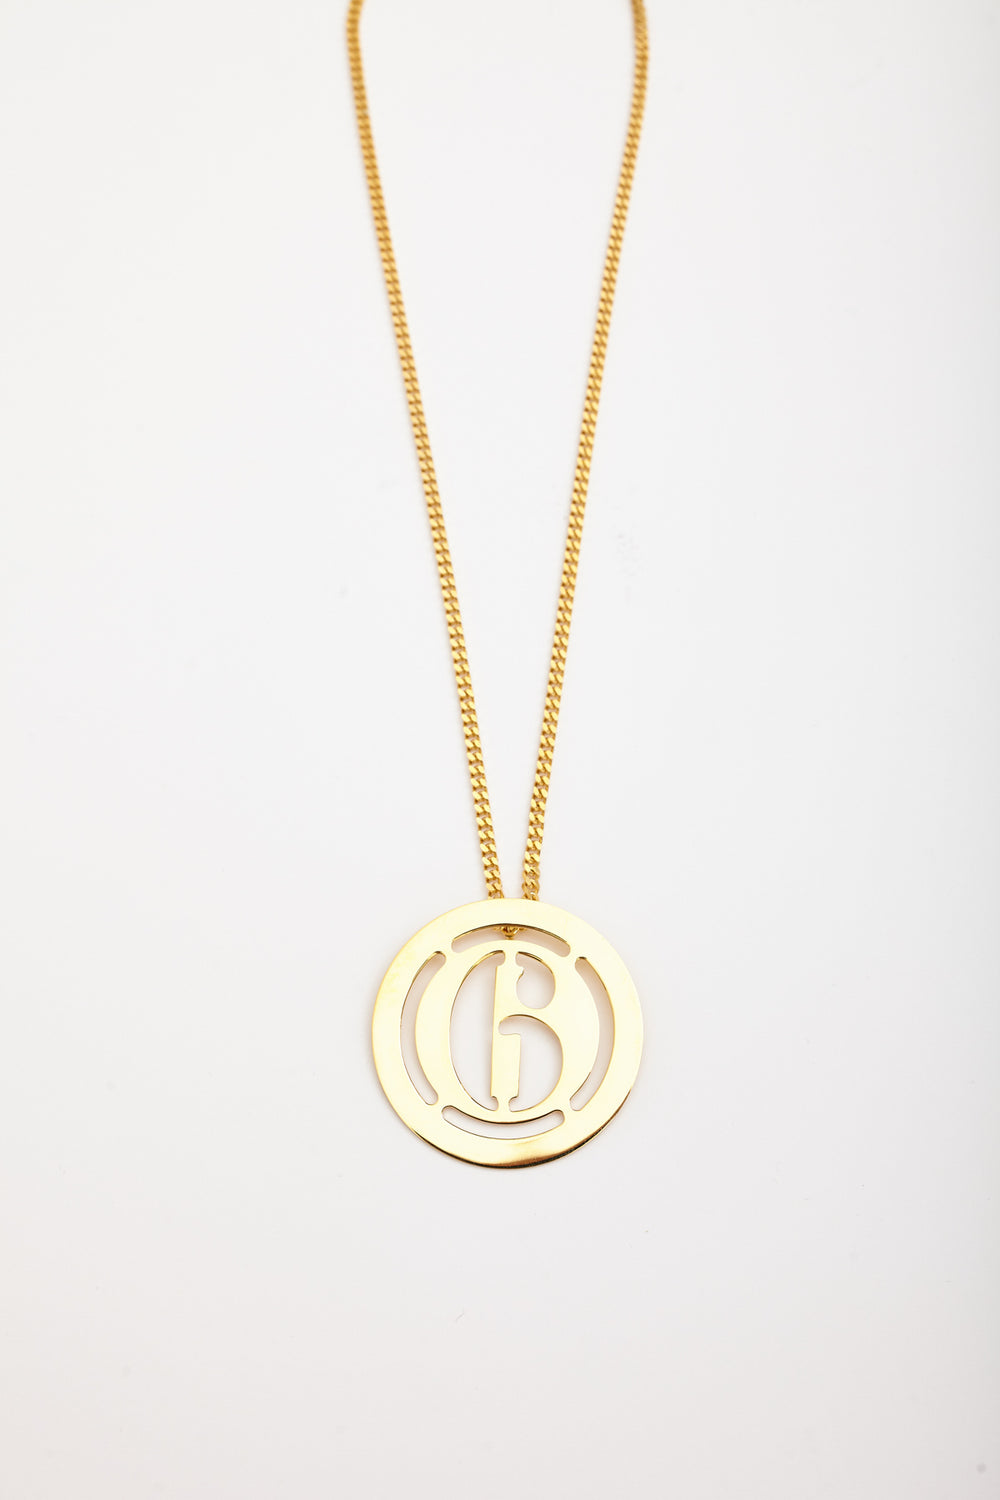 Studio Avra - LOGO NECKLACE - GOLD